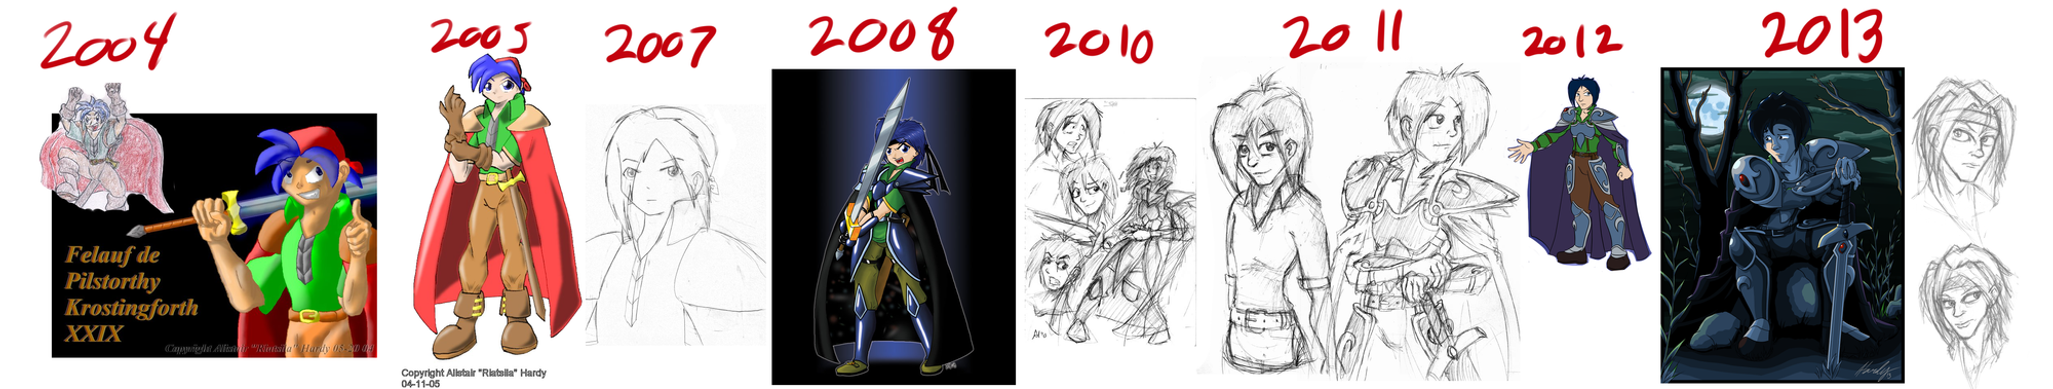 Felauf Art Progression by Riatsila